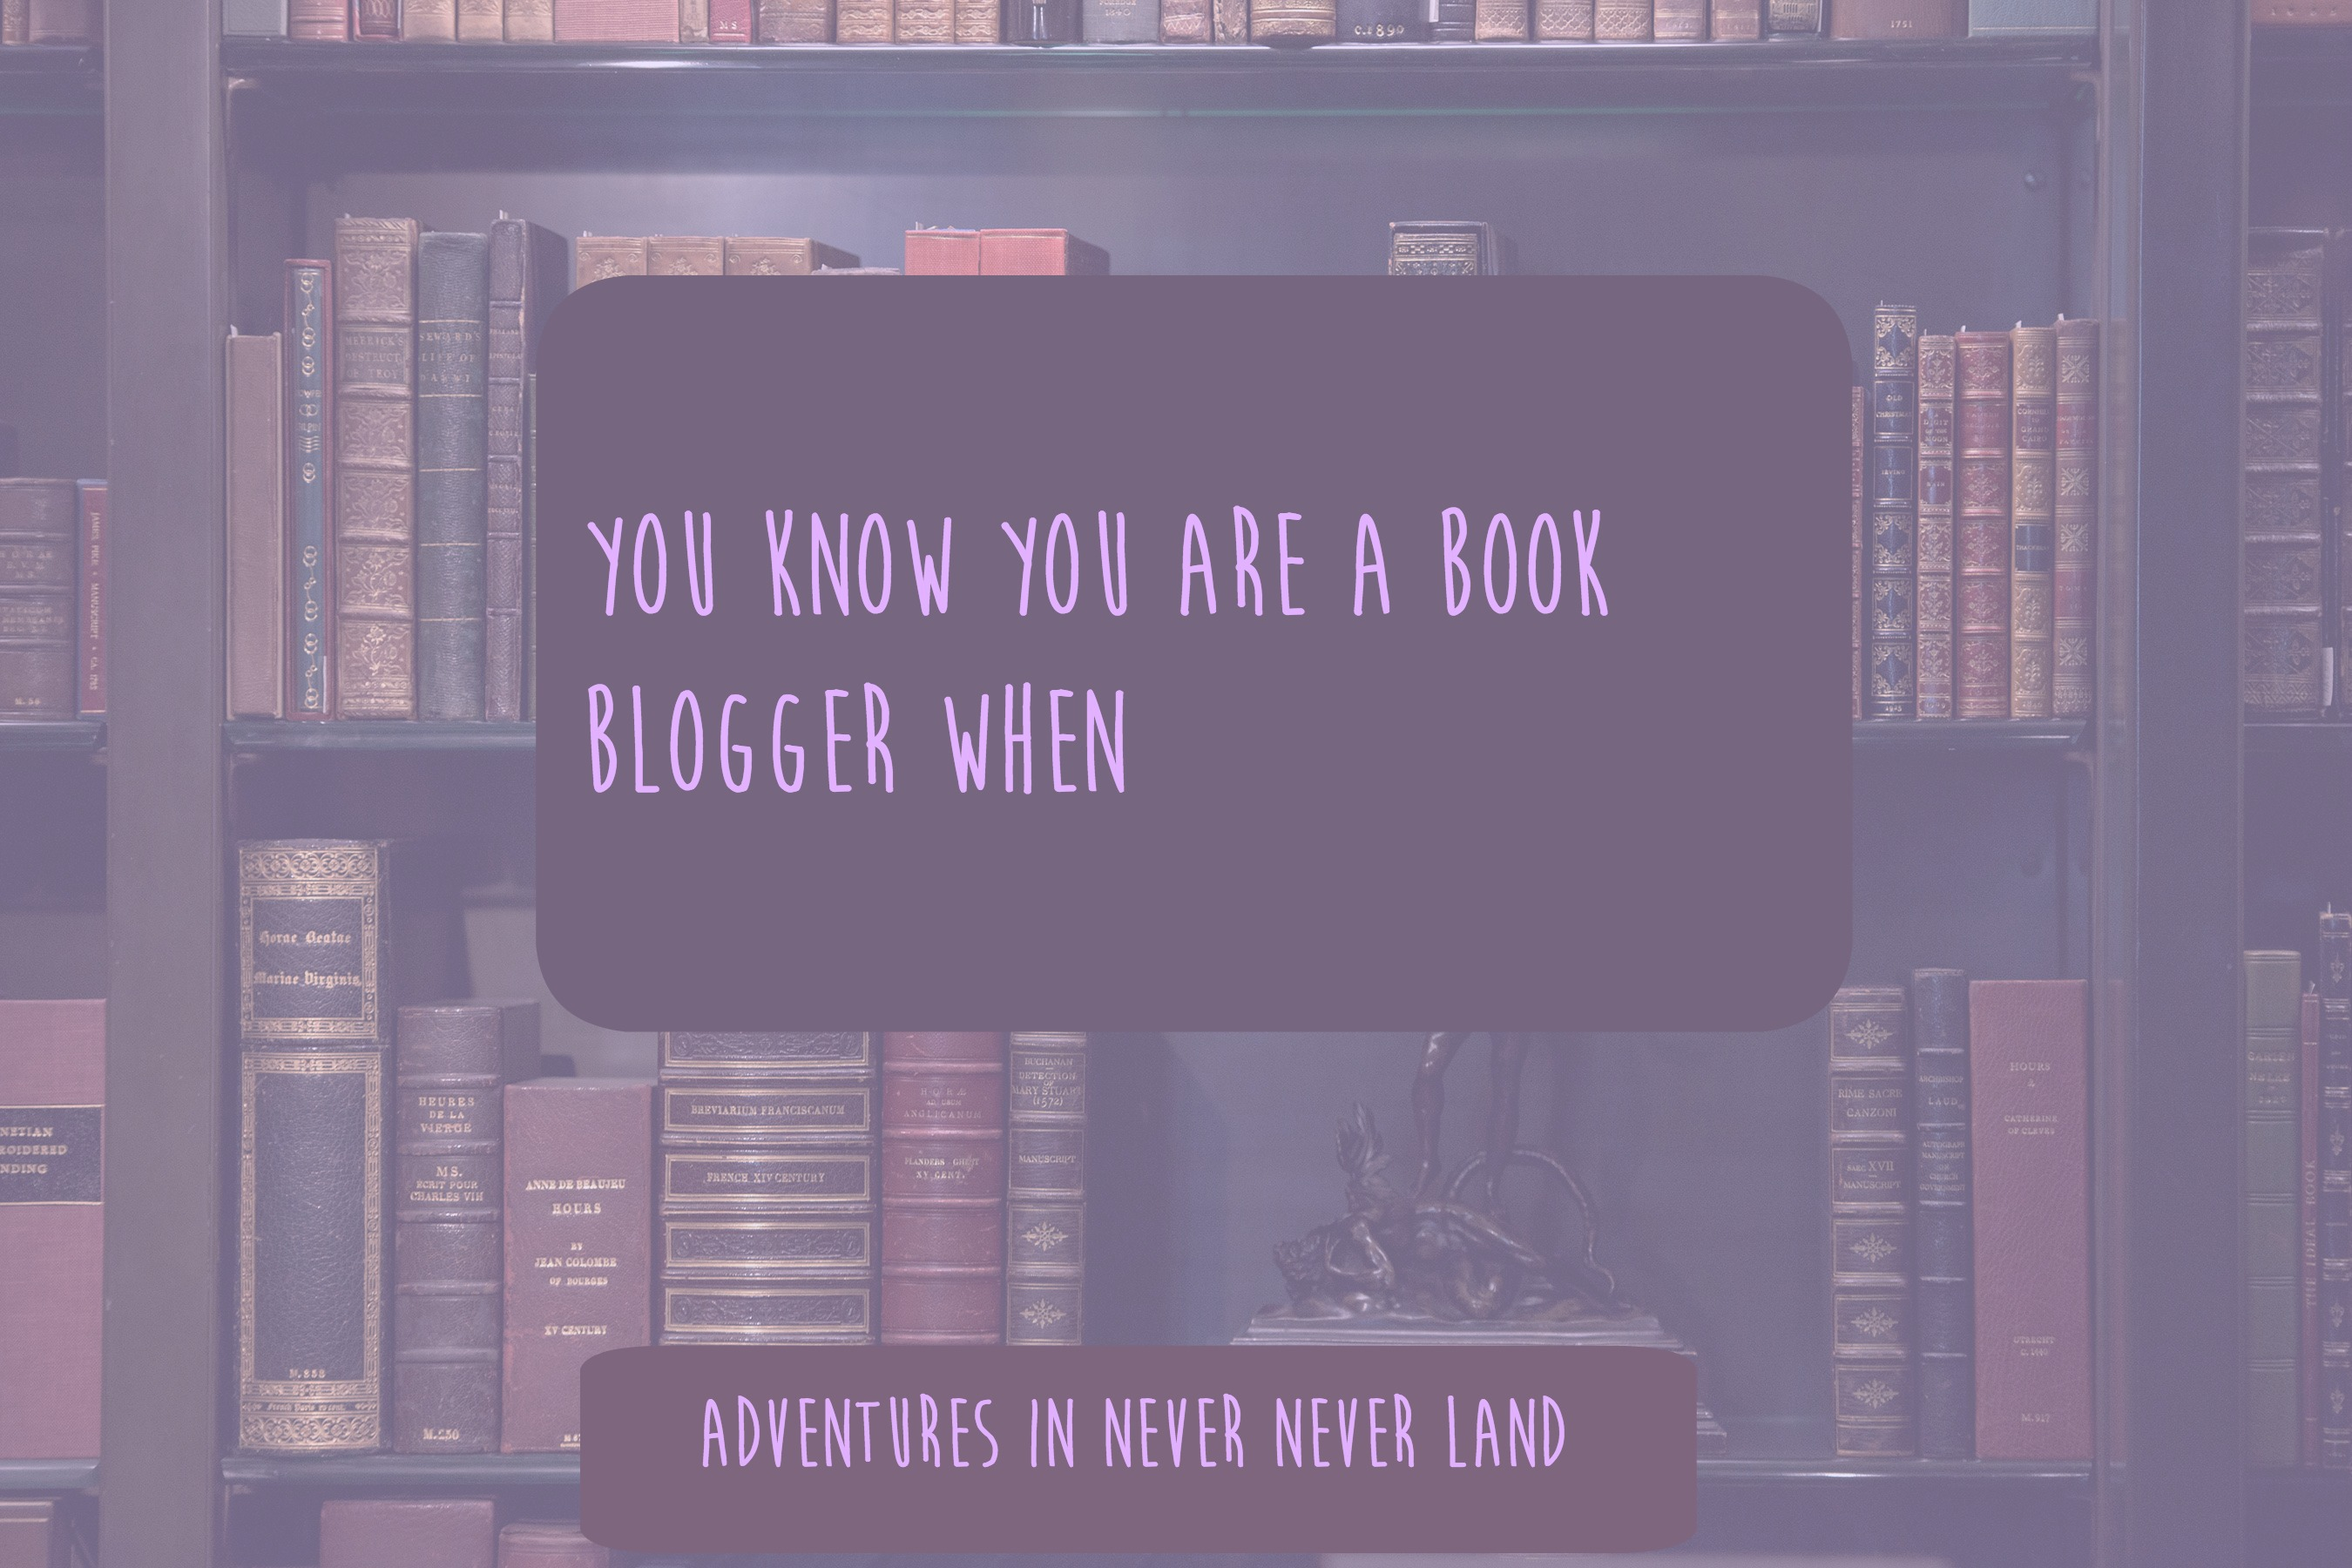 you know you are a book blogger when